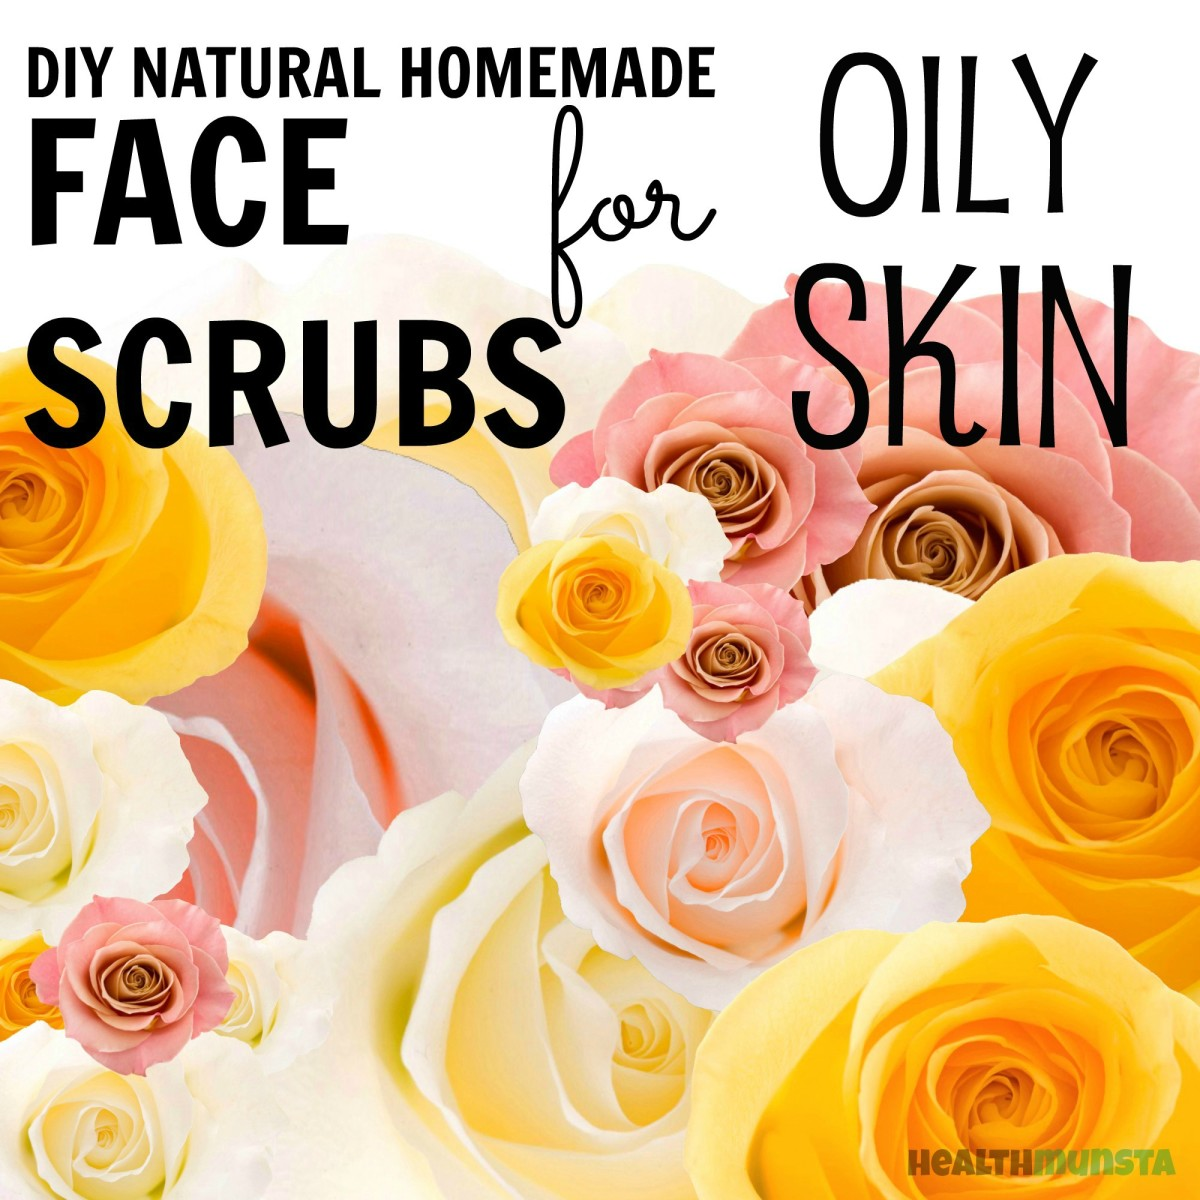 Awesome DIY face scrubs for those with oily skin issues! All-natural, pure, safe and lovingly homemade recipes!